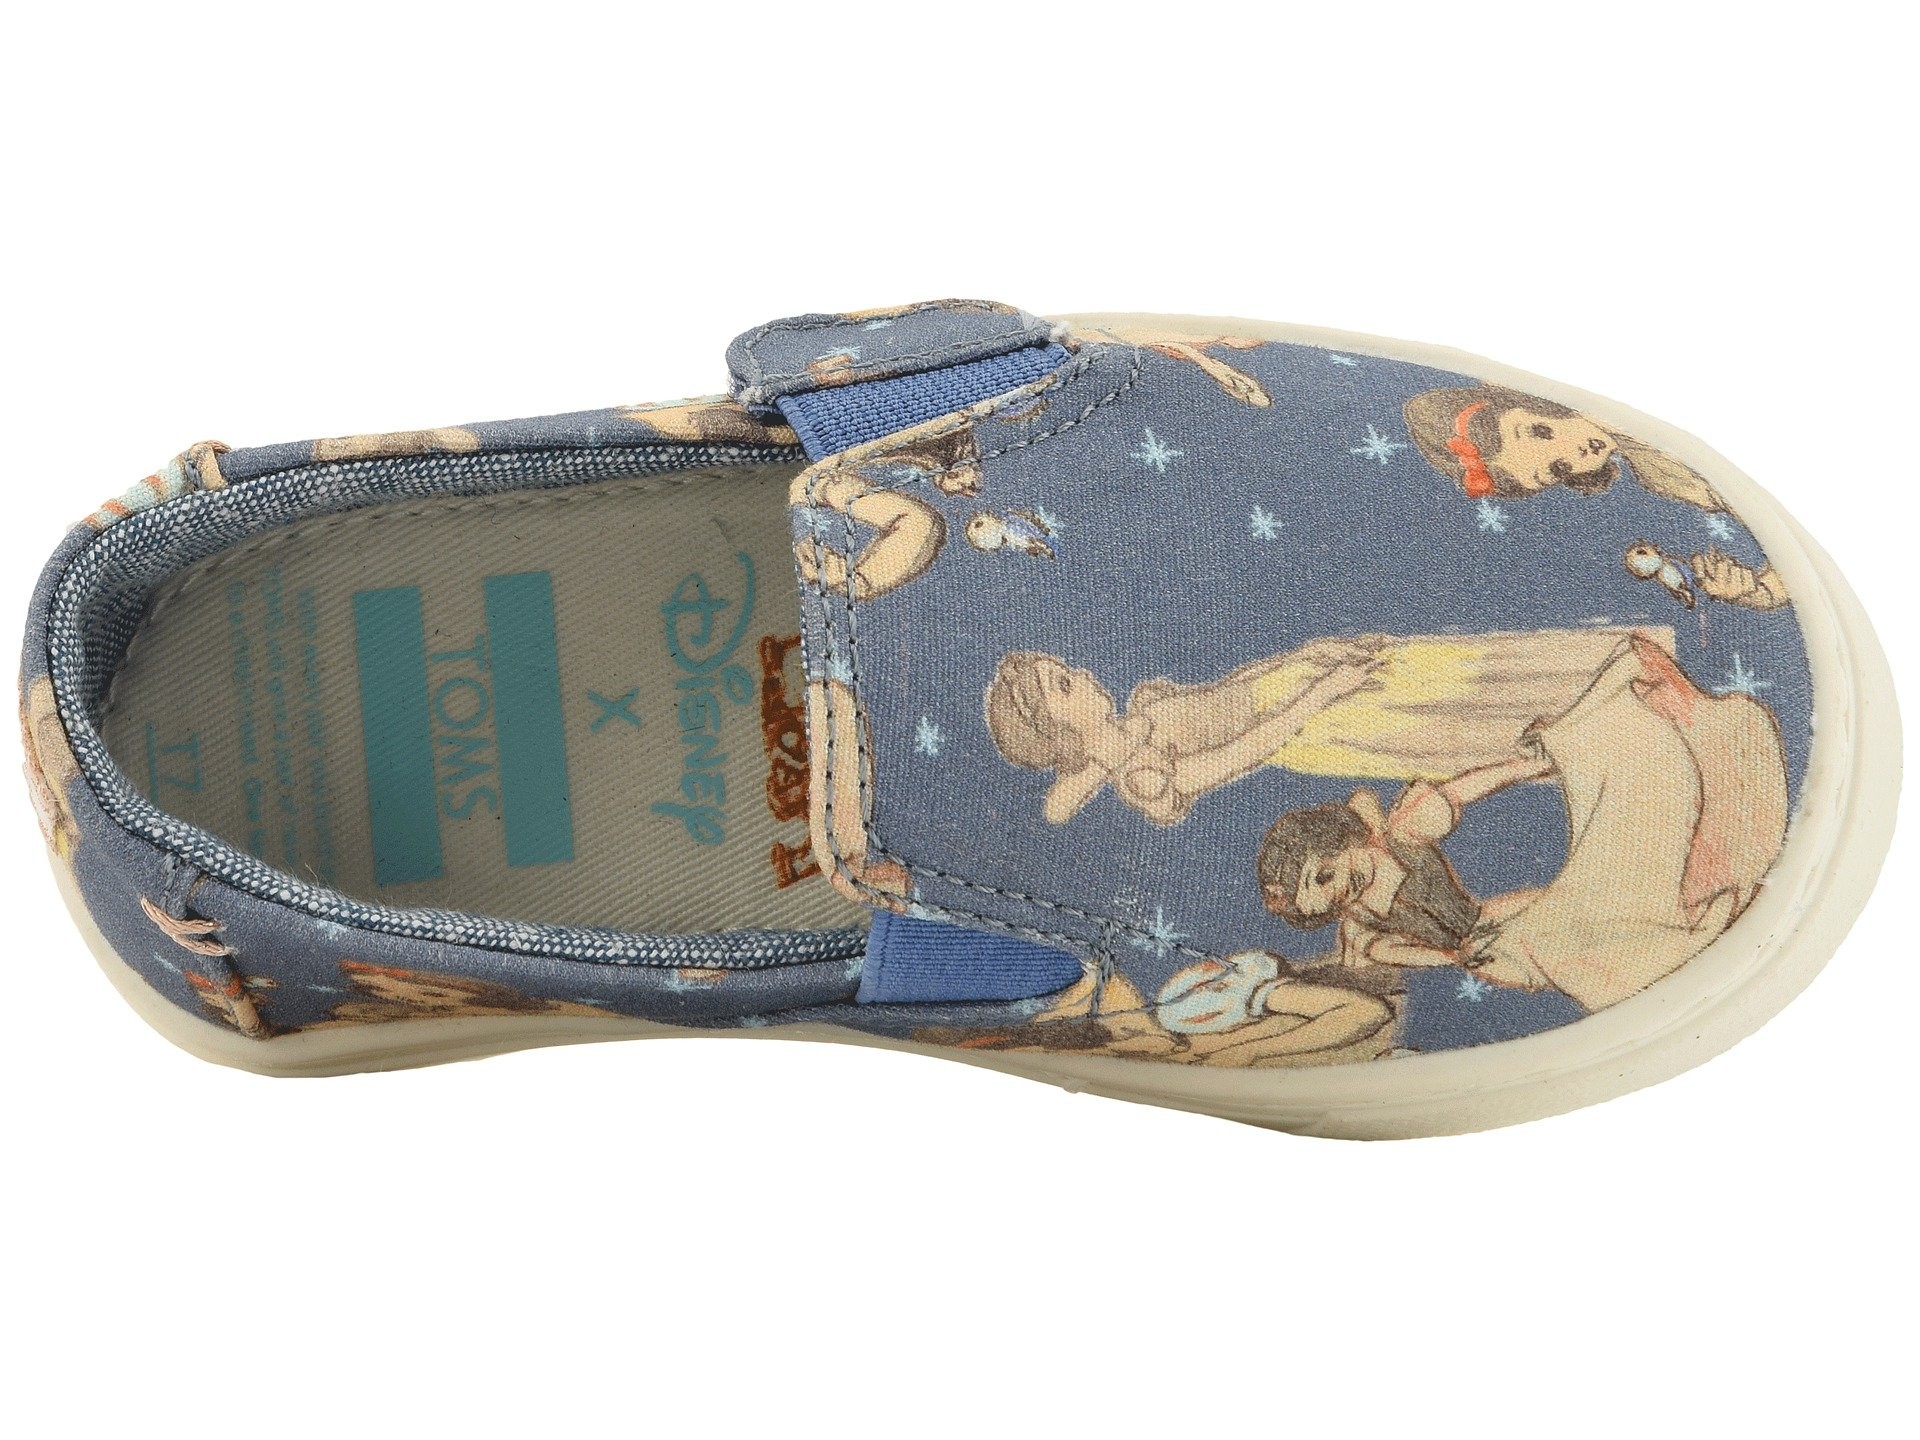 TOMS Girl's, Luca Slip on Shoes Blue 4 M by TOMS Kids (Image #9)